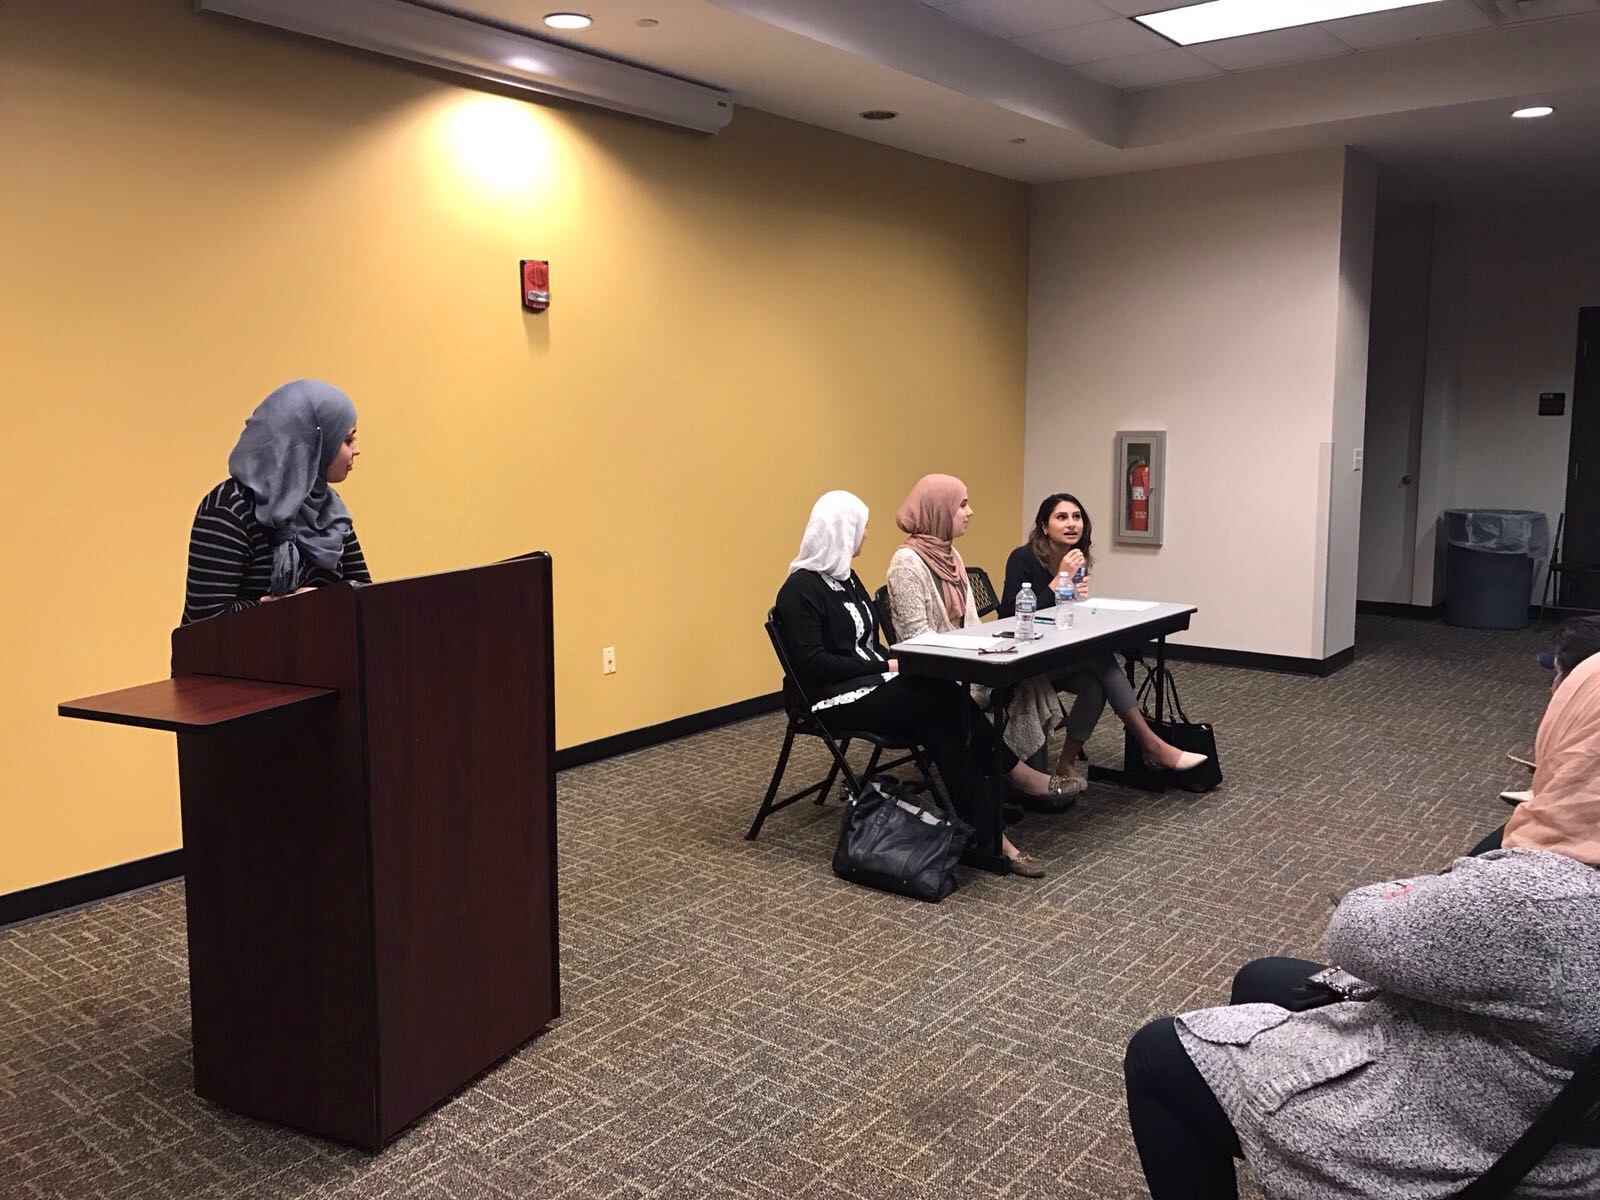 Panelists from left to right: Ream Shoreibah, Hala Sabatto and Shima Dowla. Photo courtesy of MSA